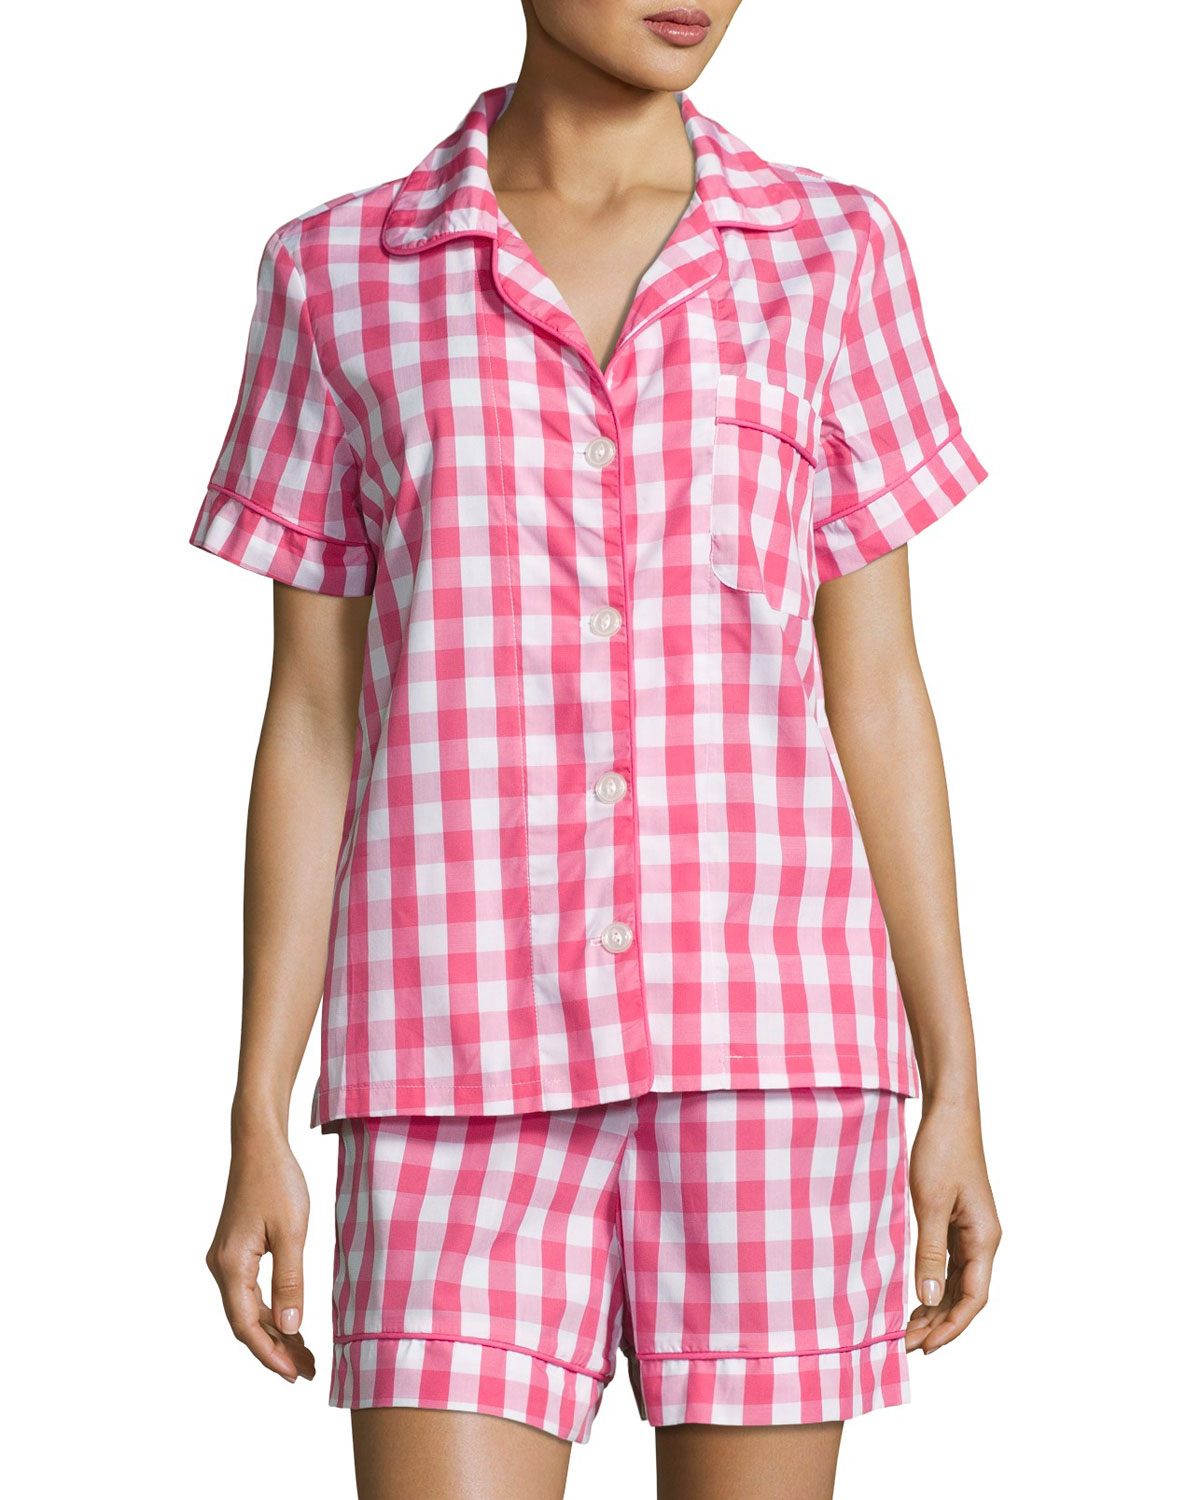 Gingham Shorty Pajama Set, Hot Pink